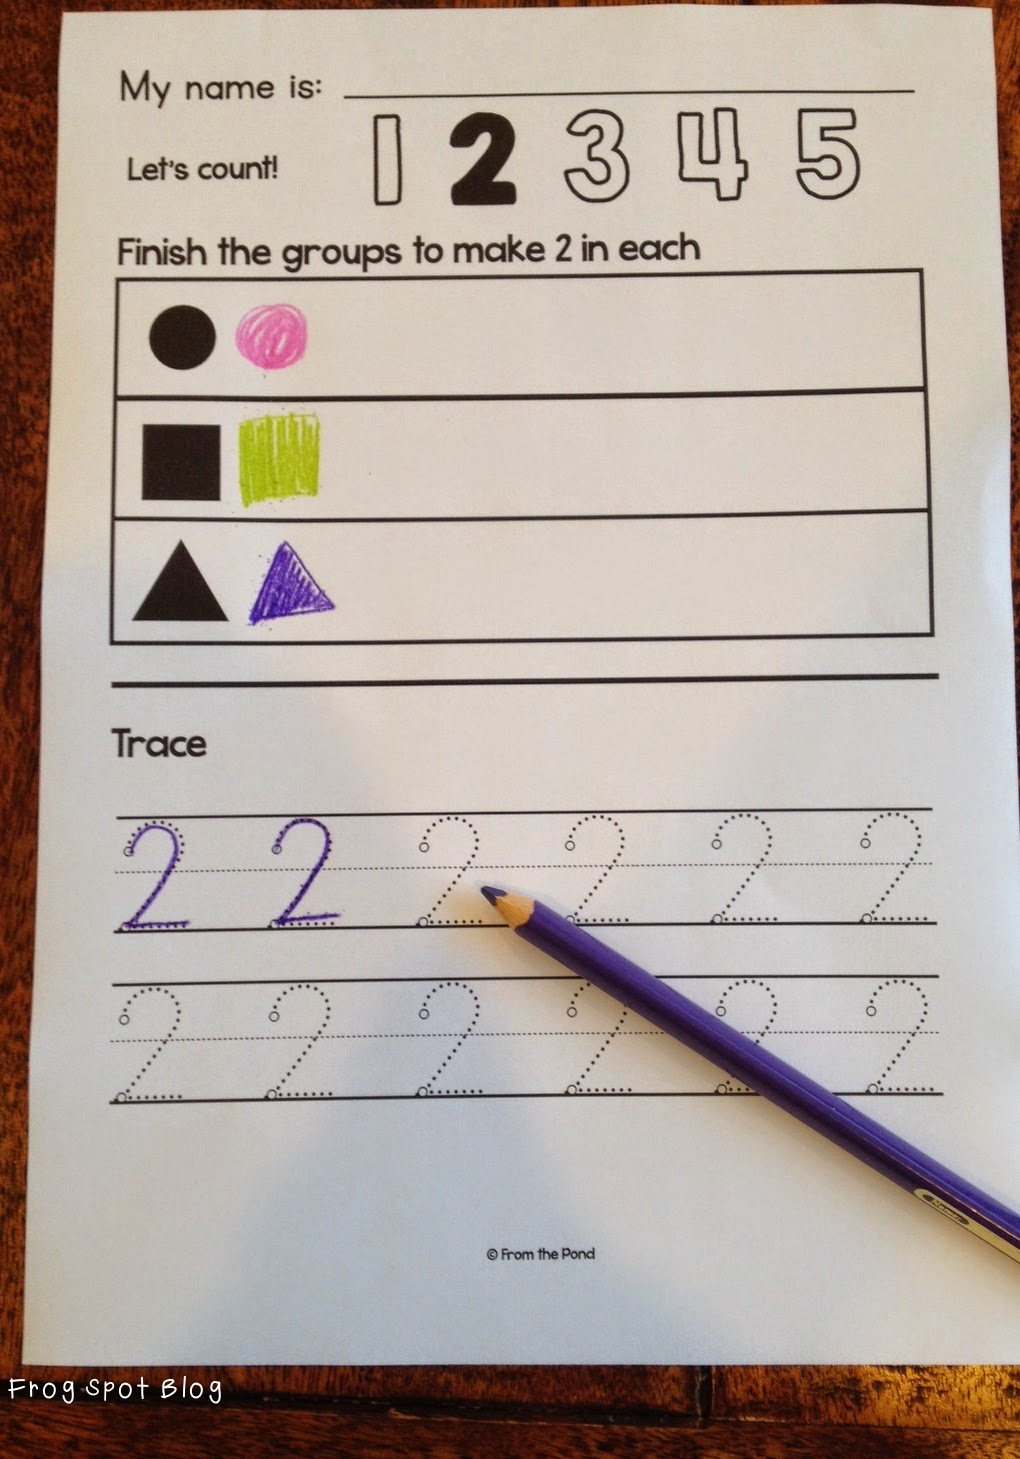 Workbooks mab worksheets : Let's Learn Numbers - Teaching Numbers for the First Time | From ...